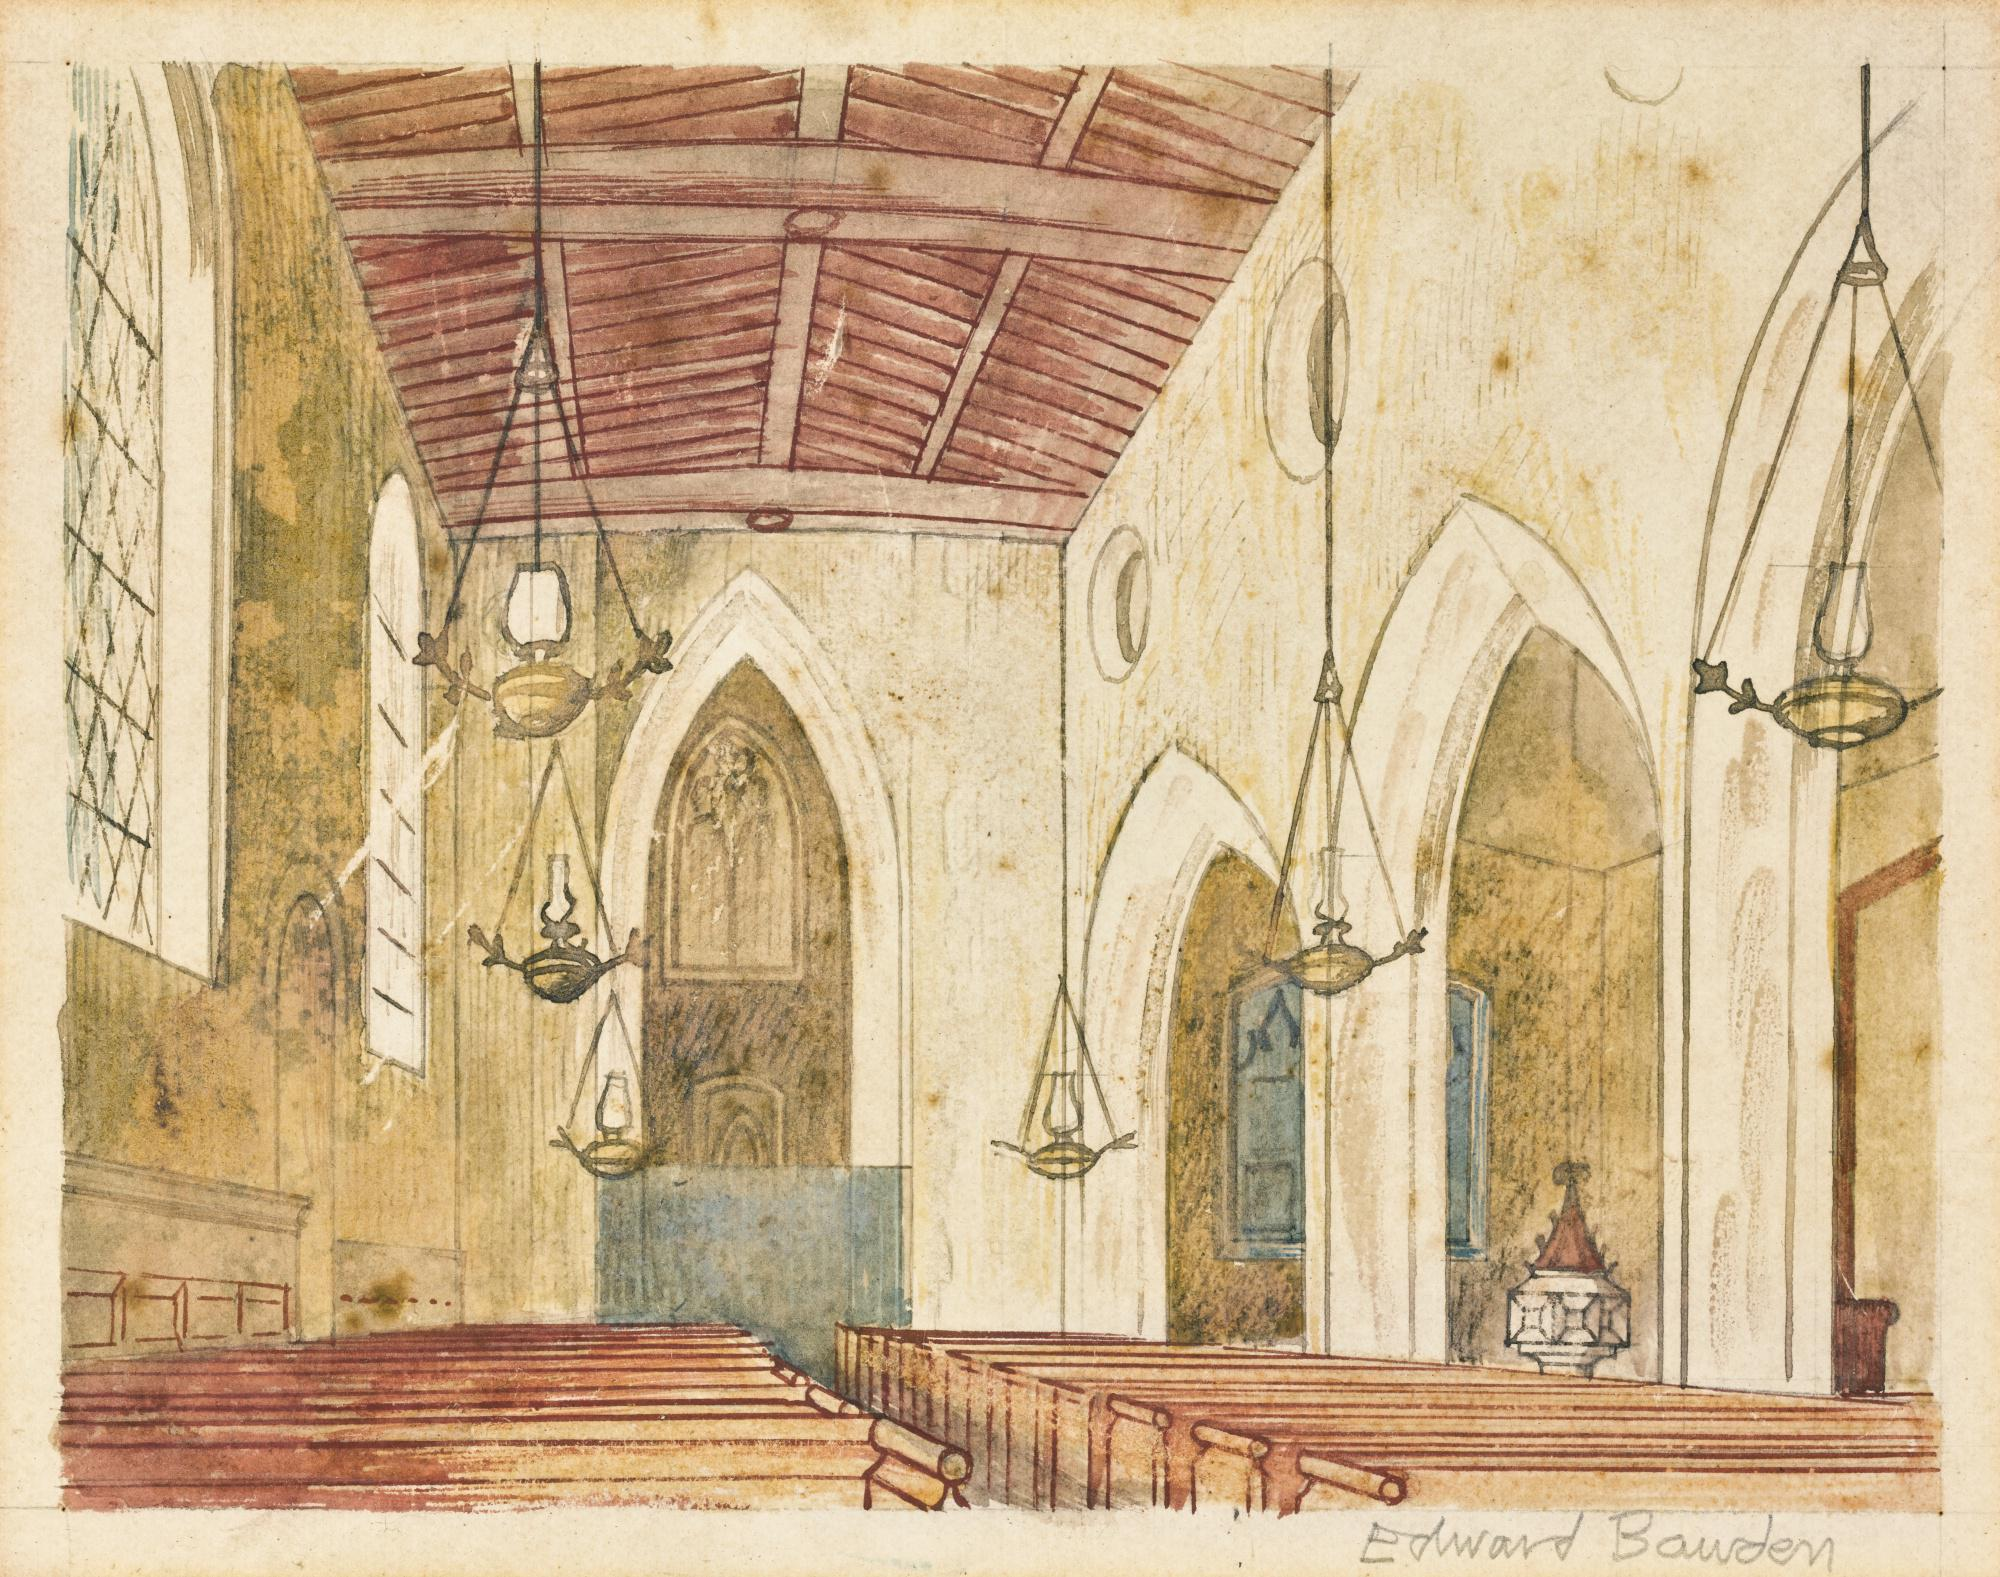 EDWARD BAWDEN, R.A. | AN ENGLISH CHURCH INTERIOR